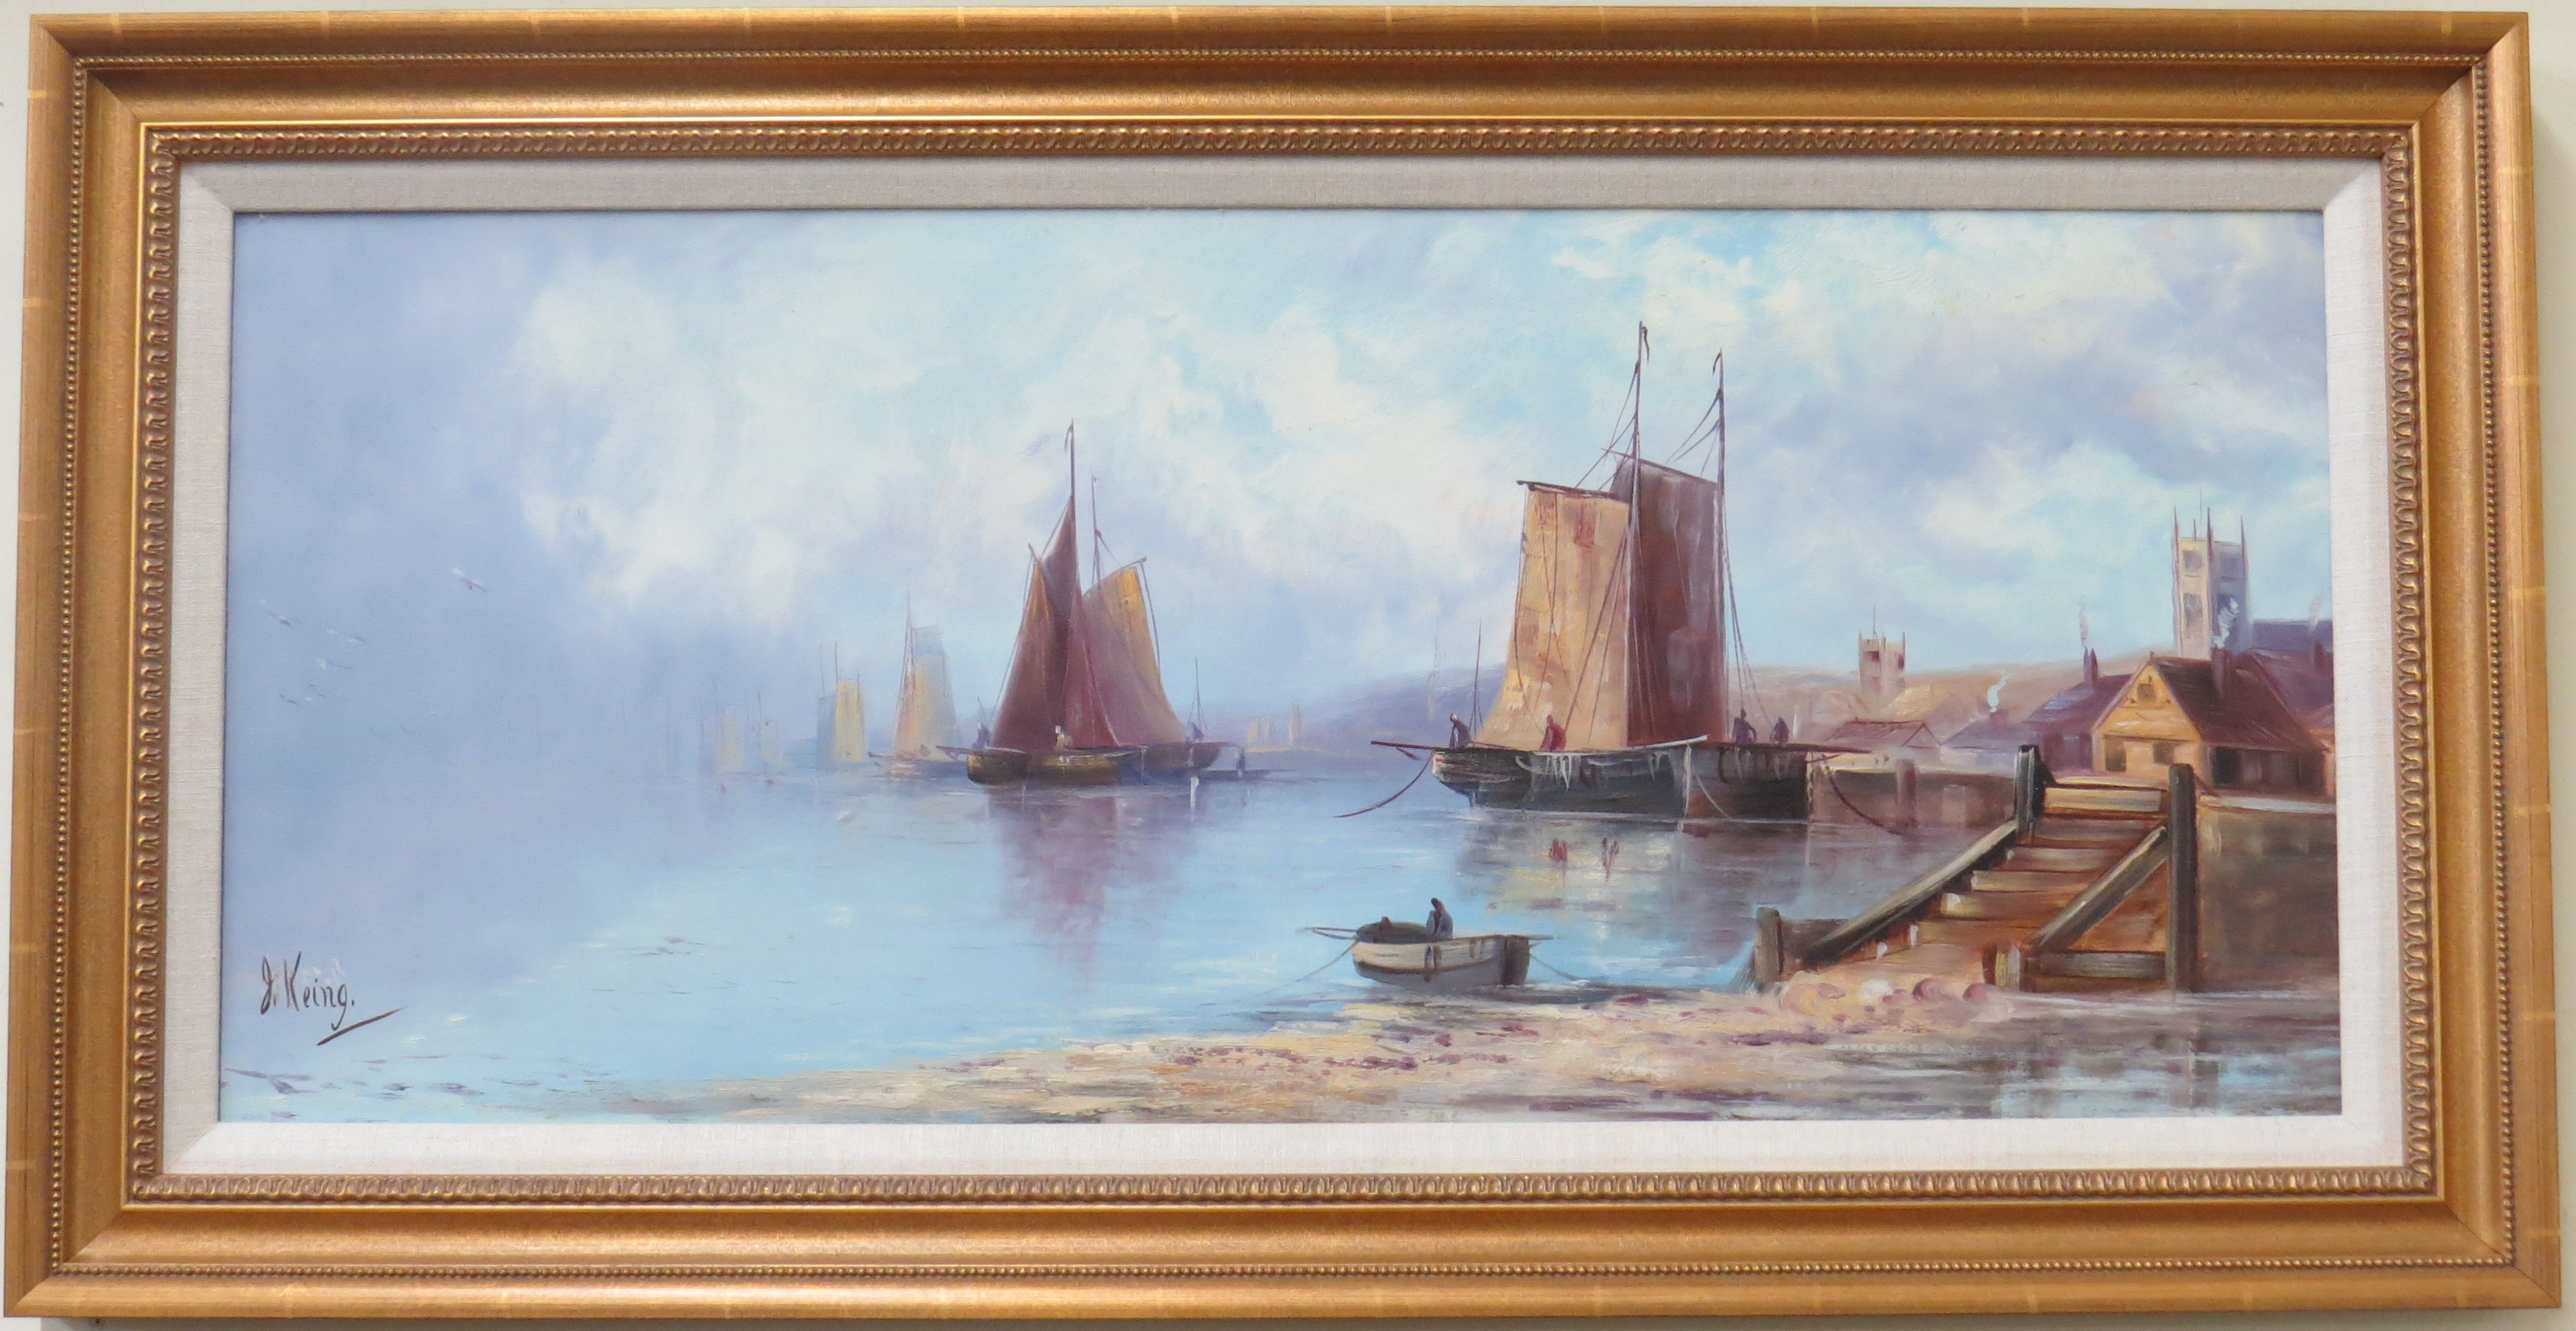 Watercolor of a Dutch Harbor Scene with Village and Dock, Signed J. Keing